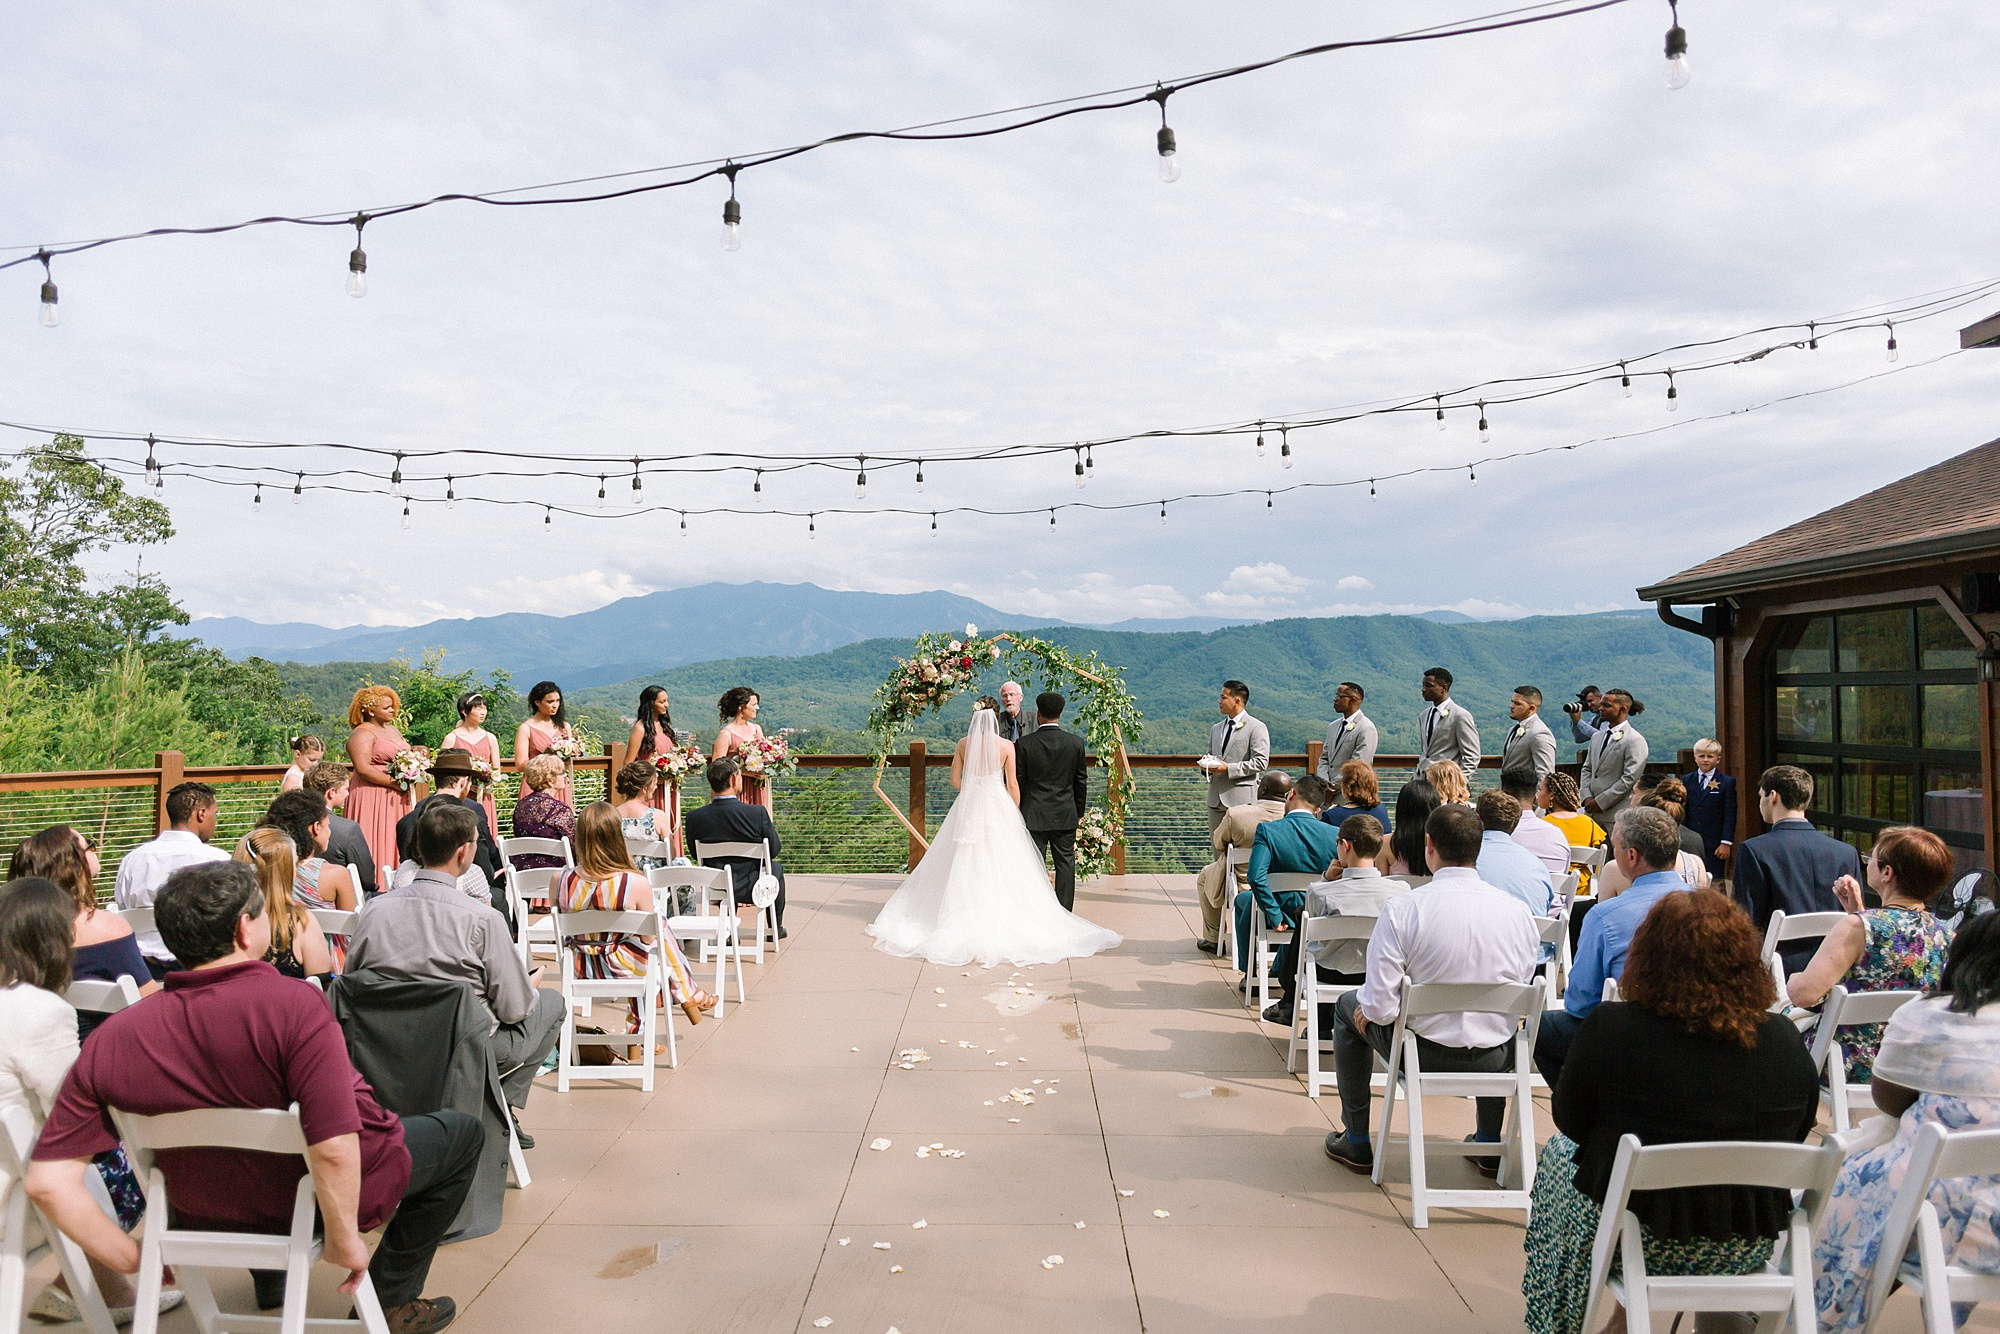 Simply Sweet Mountaintop Affair at The Magnolia Wedding Venue in Pigeon Forge, TN